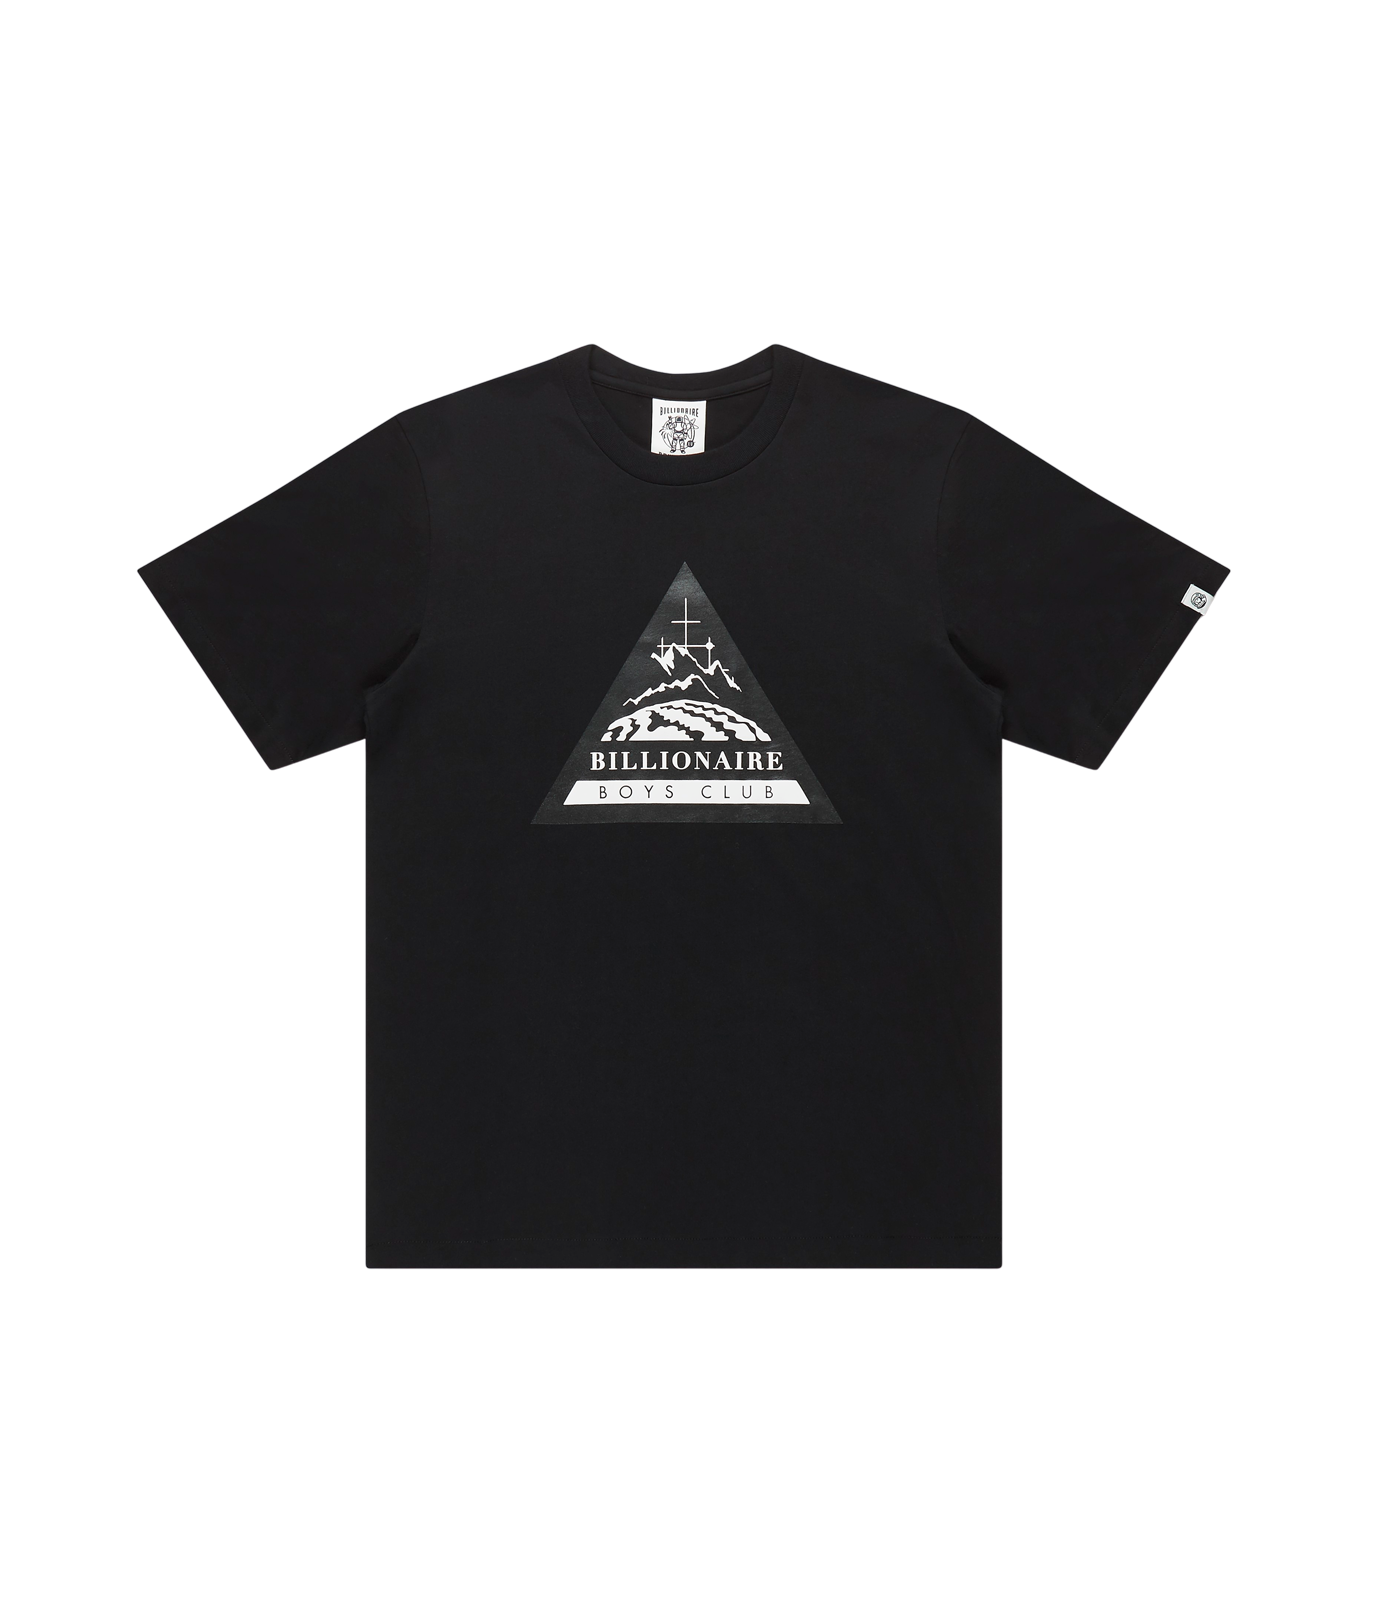 EXPEDITION LOGO T-SHIRT - BLACK